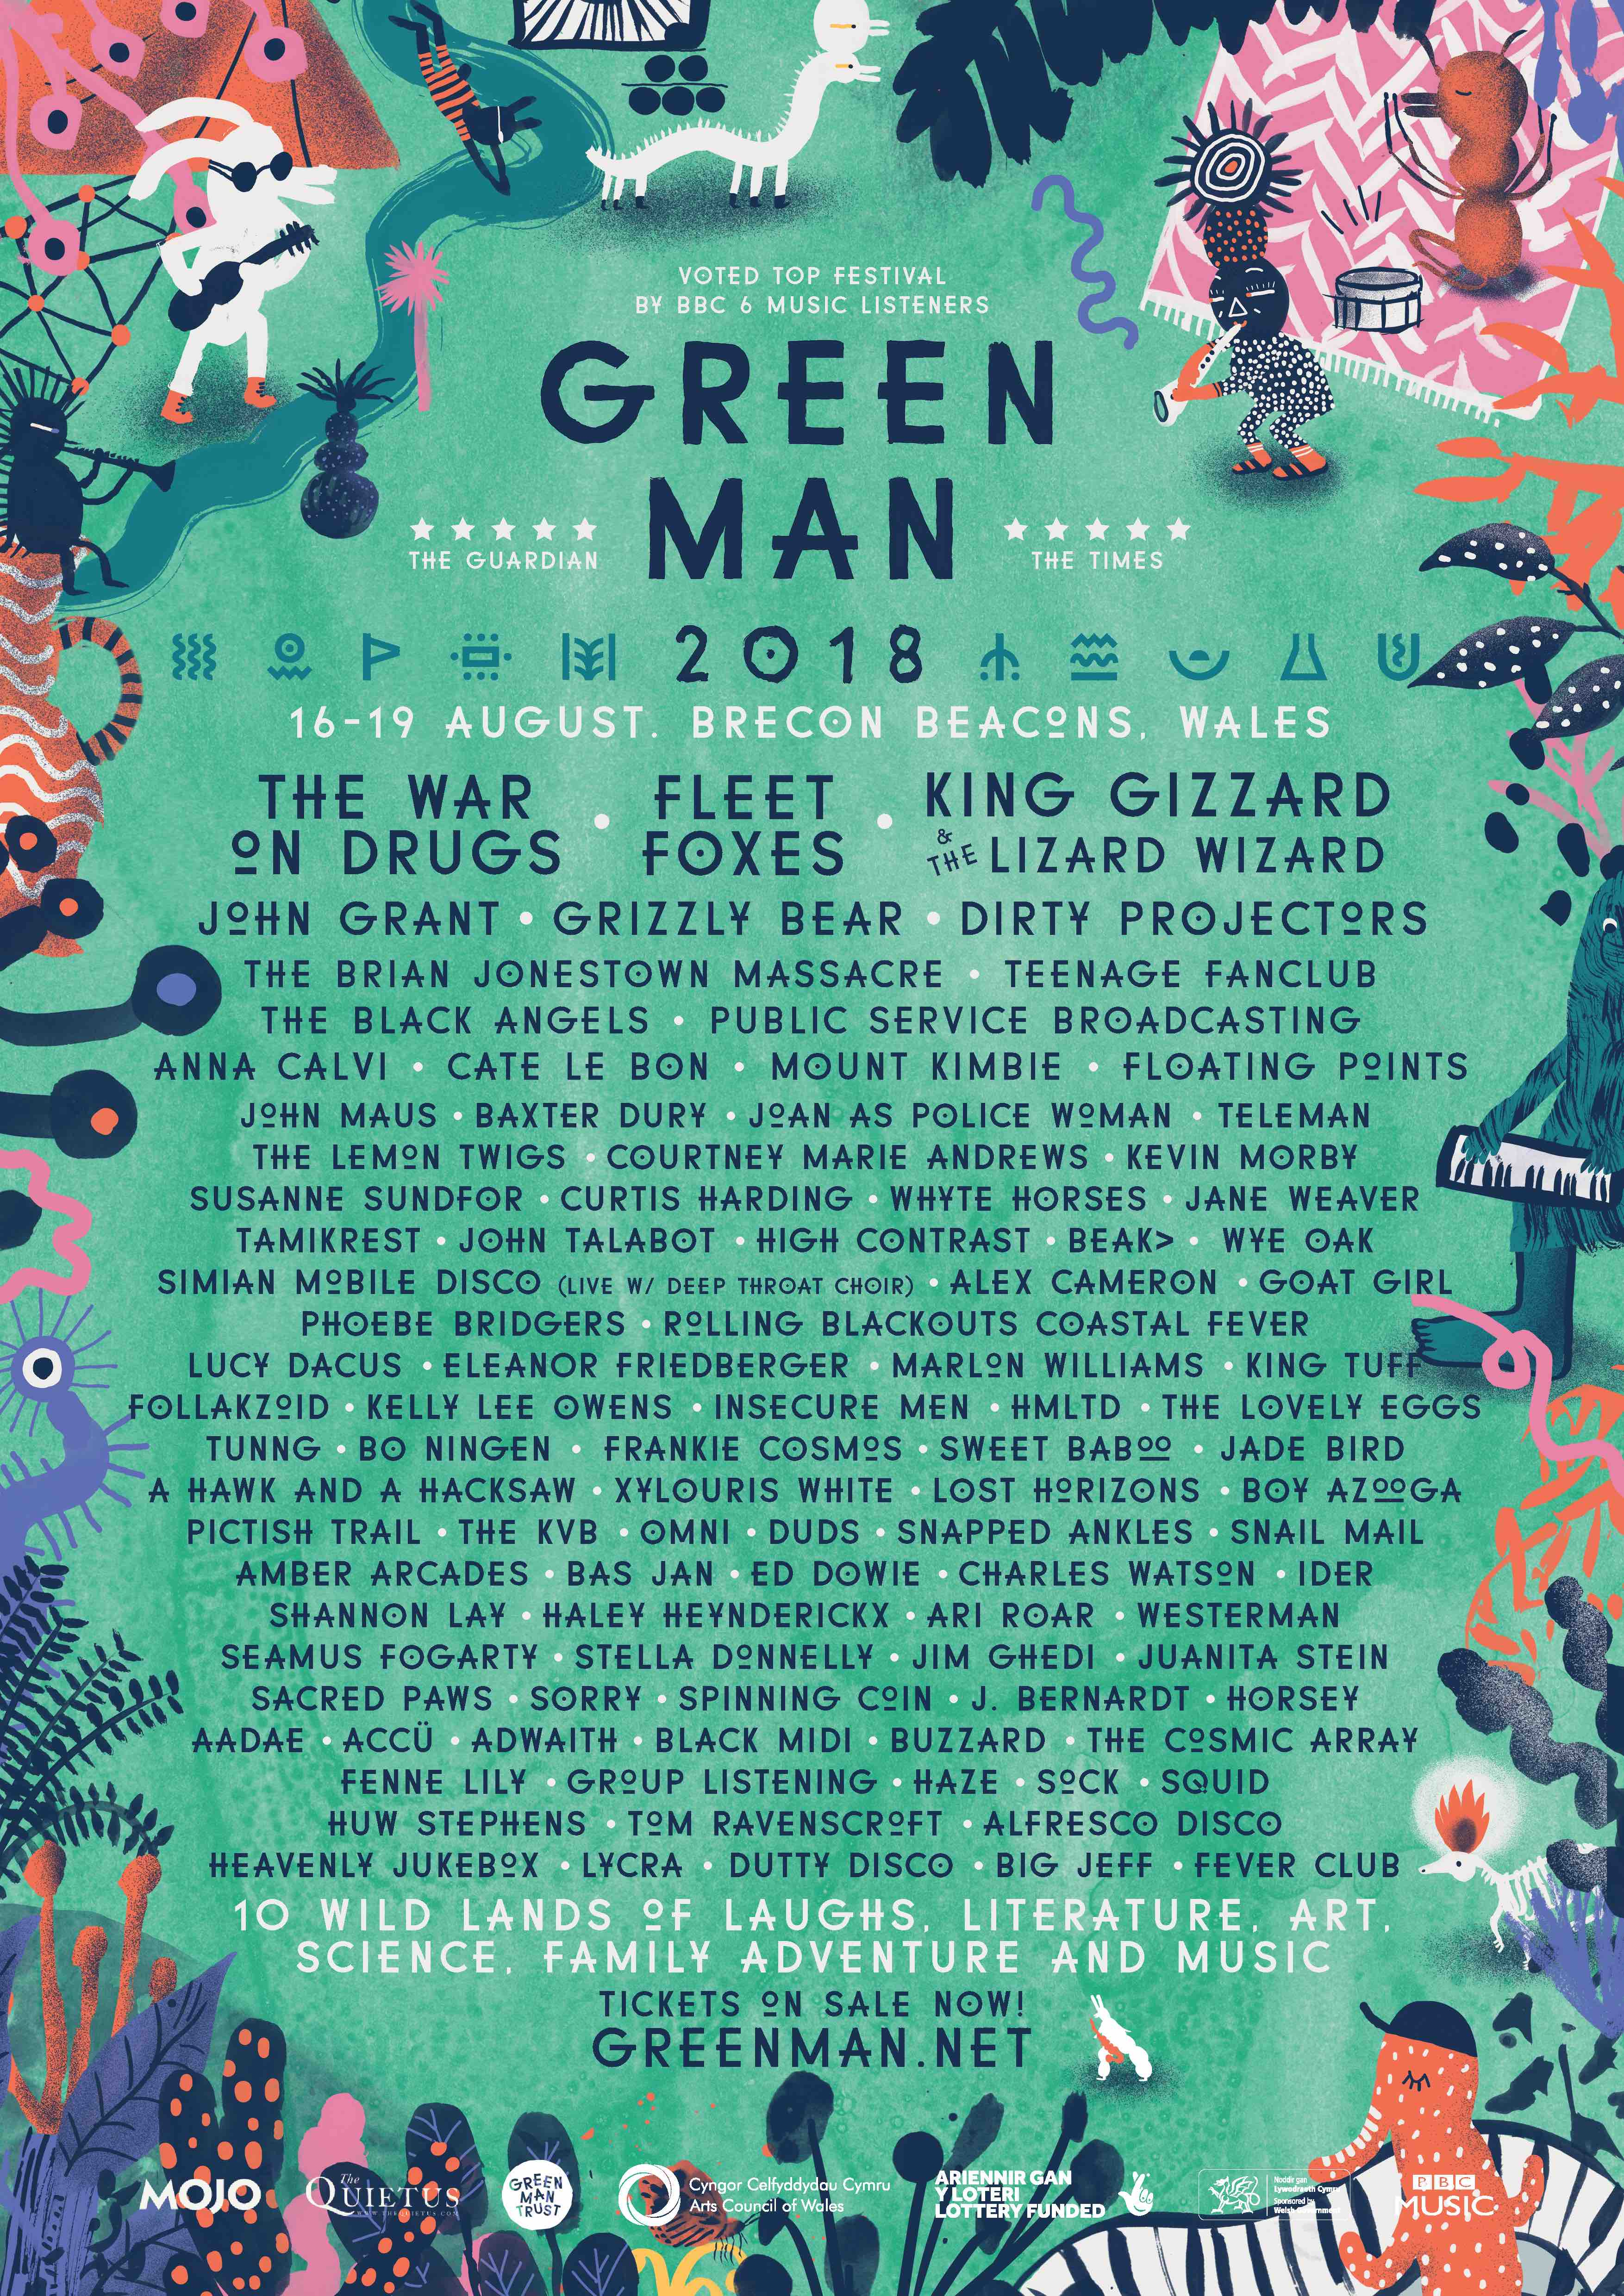 NEWS: Teenage Fanclub, The Lovely Eggs, Frankie Cosmos, Eleanor Friedberger amongst final additions for Green Man